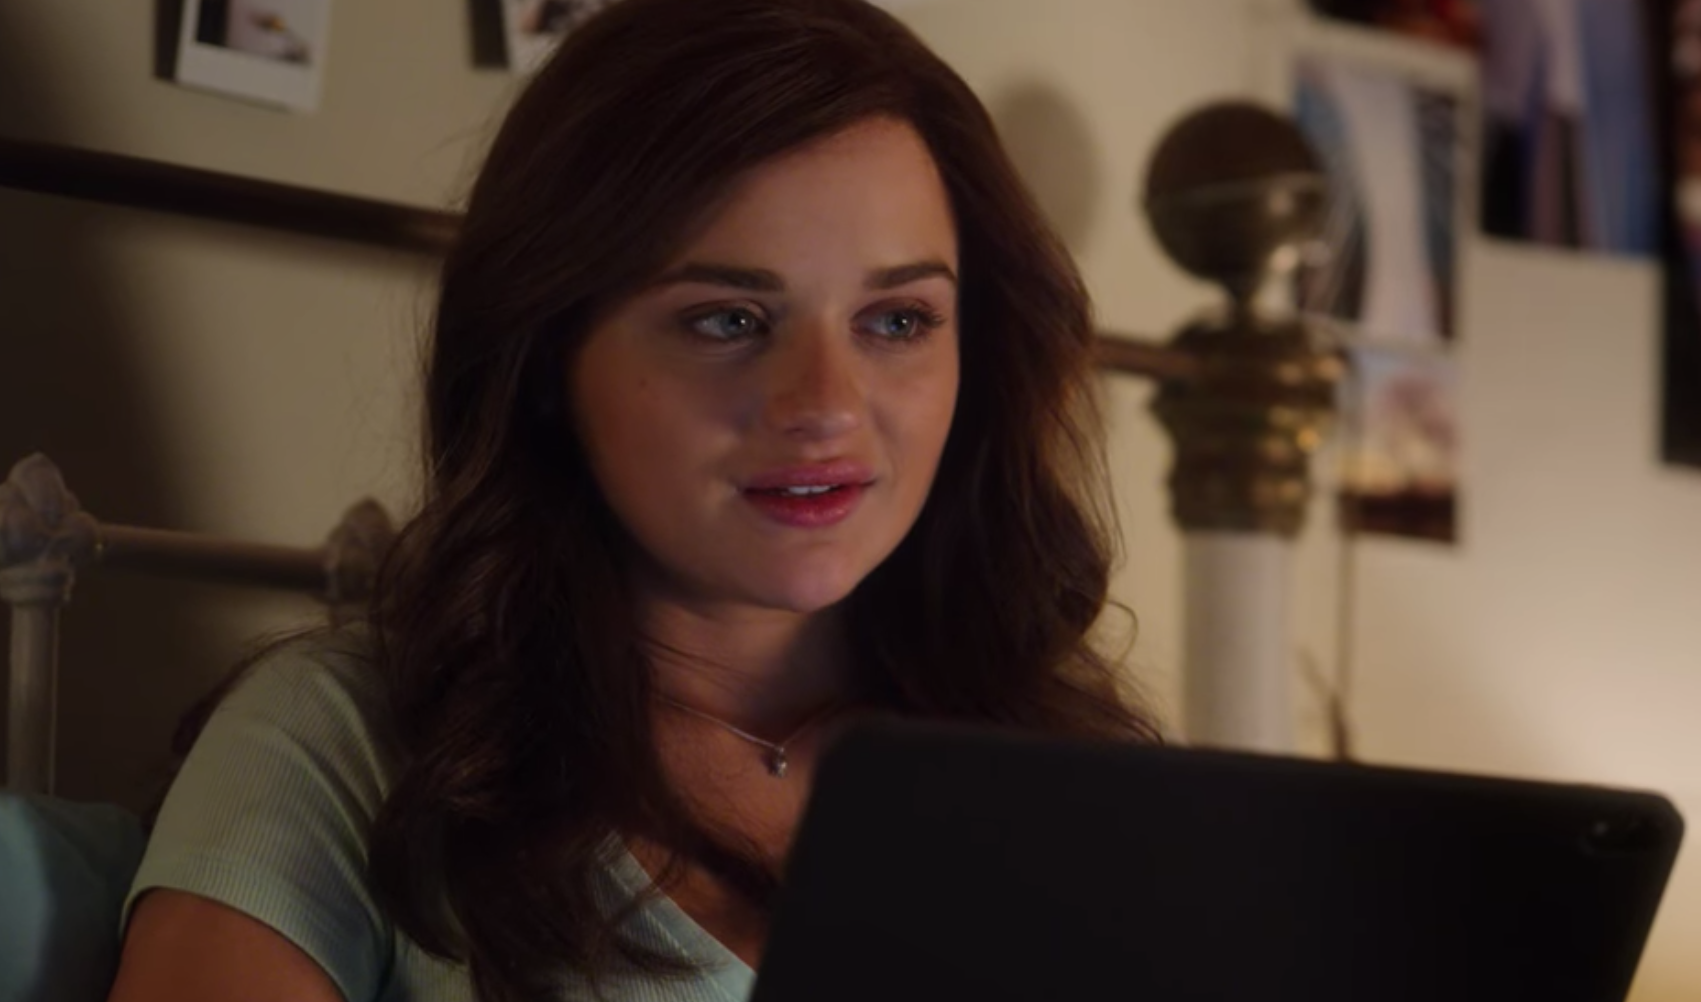 A close-up of Elle as she looks away from her laptop screen